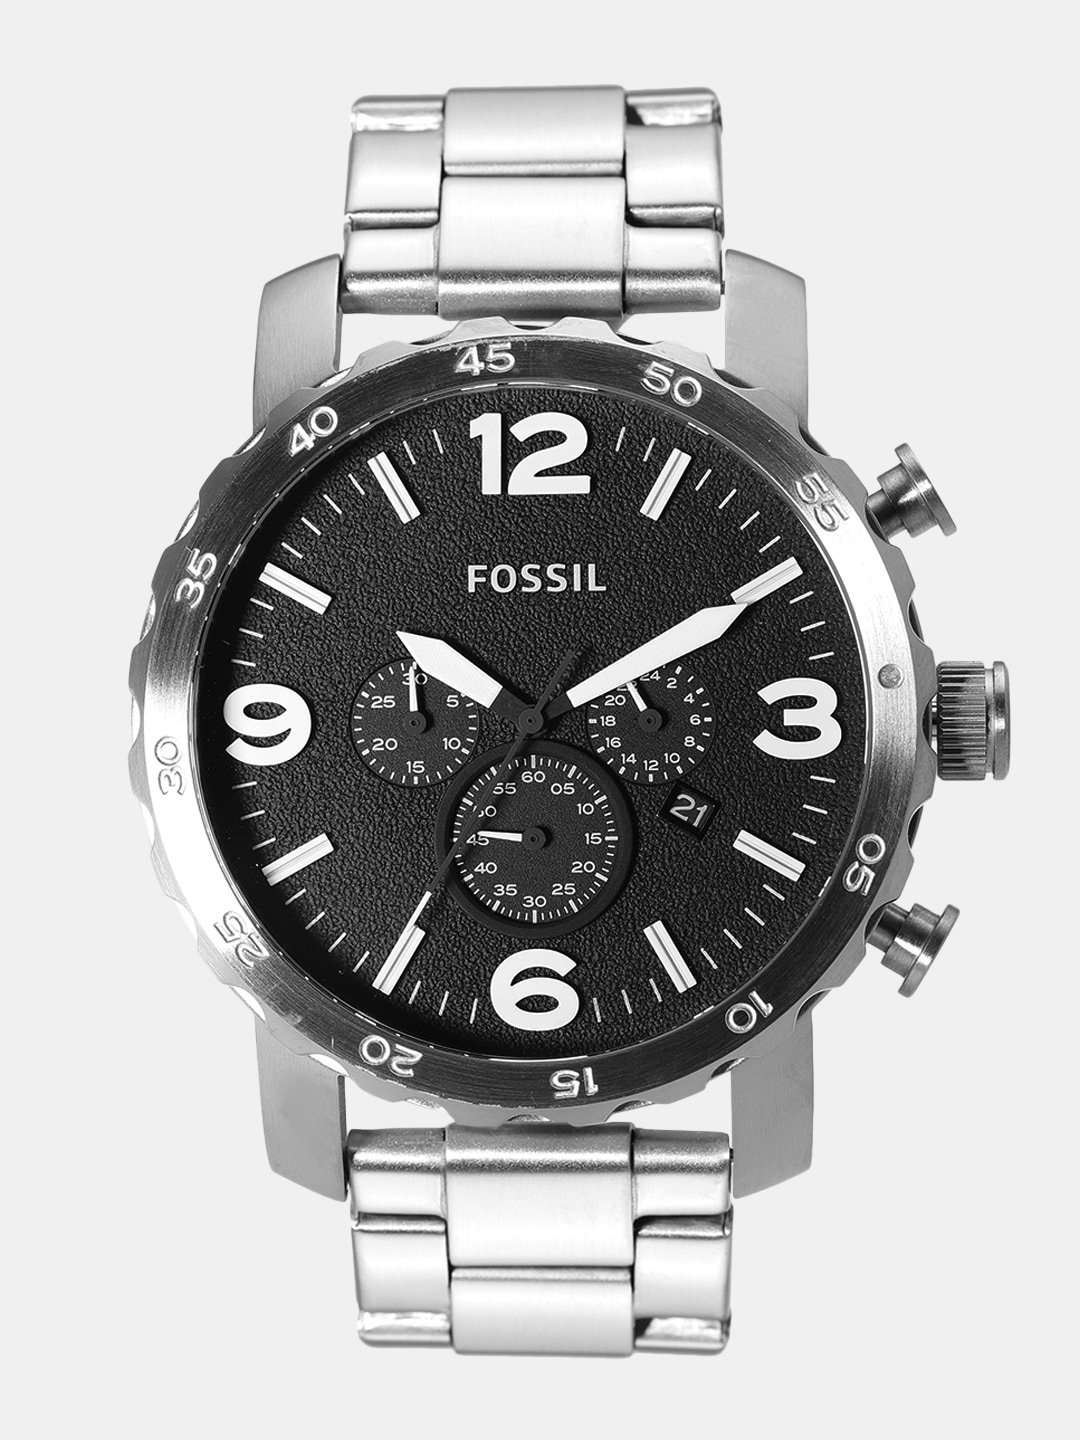 Fossil Watch Buy Watches For Men Women Online Myntra Ch2600